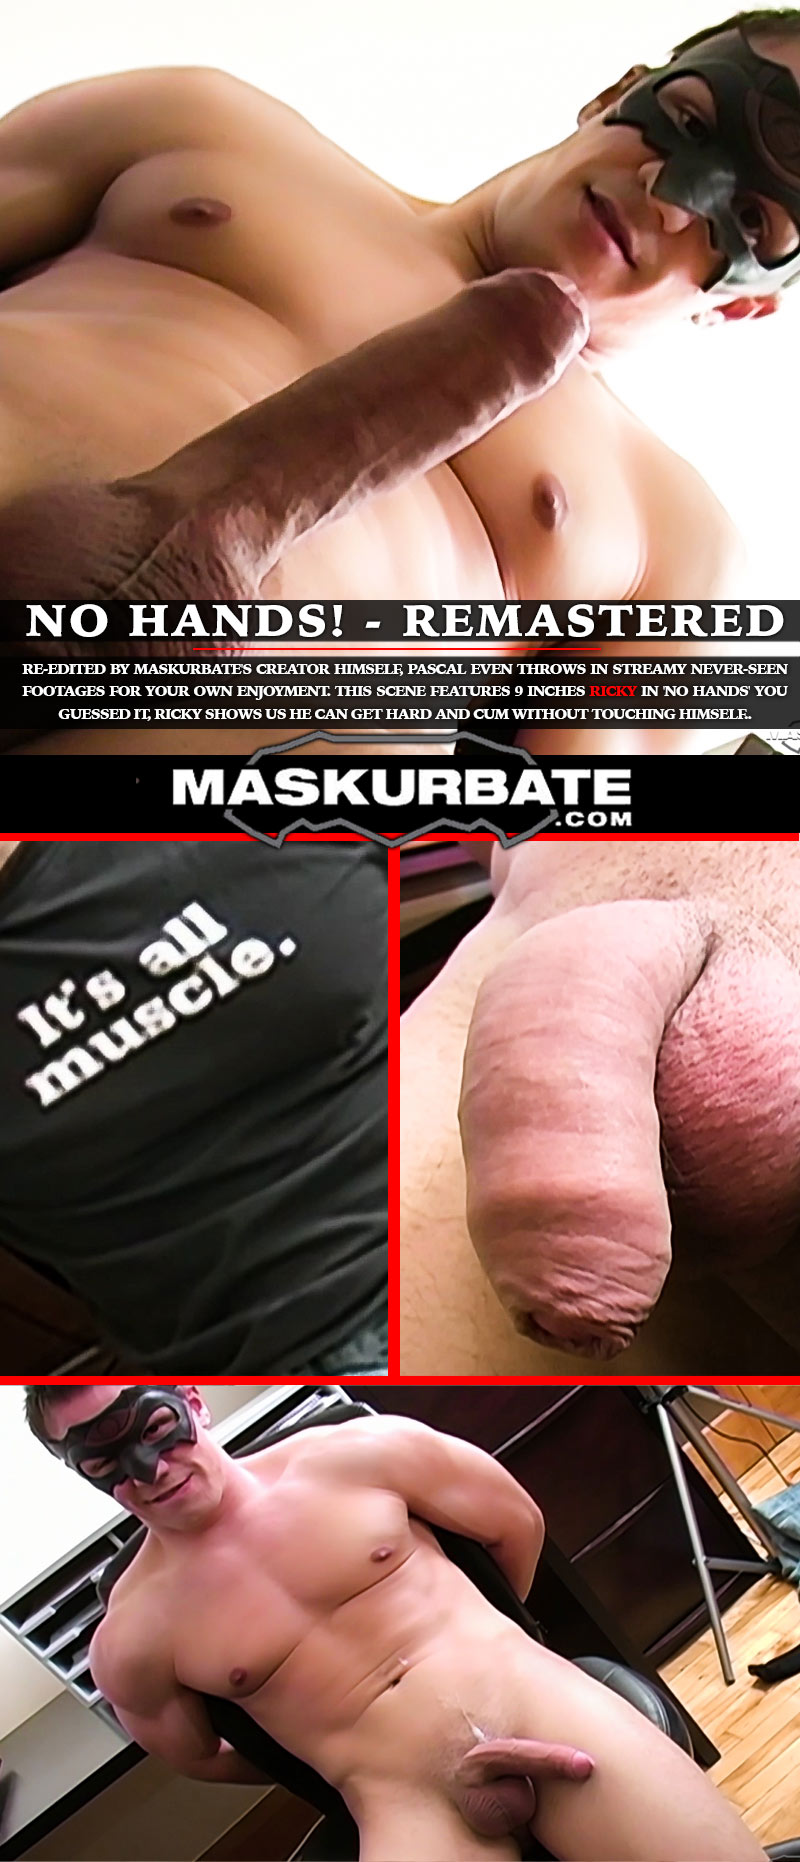 No-Hands! Remastered at Maskurbate